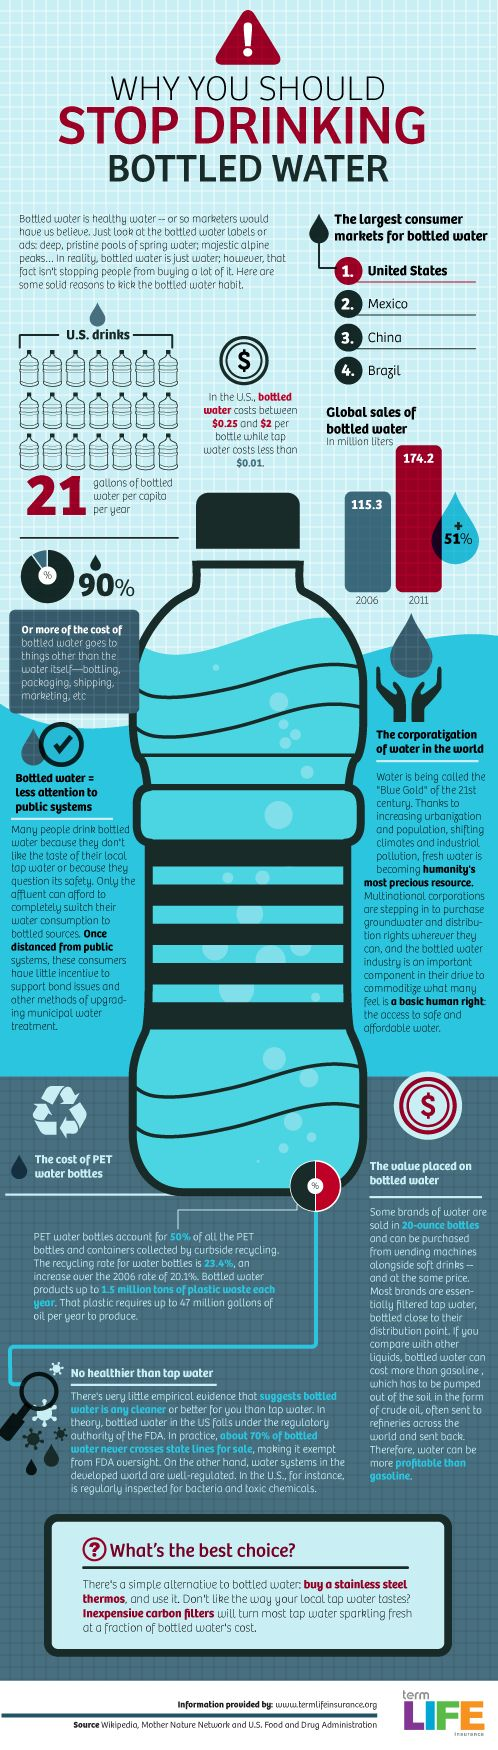 Why you should stop drinking bottled water...